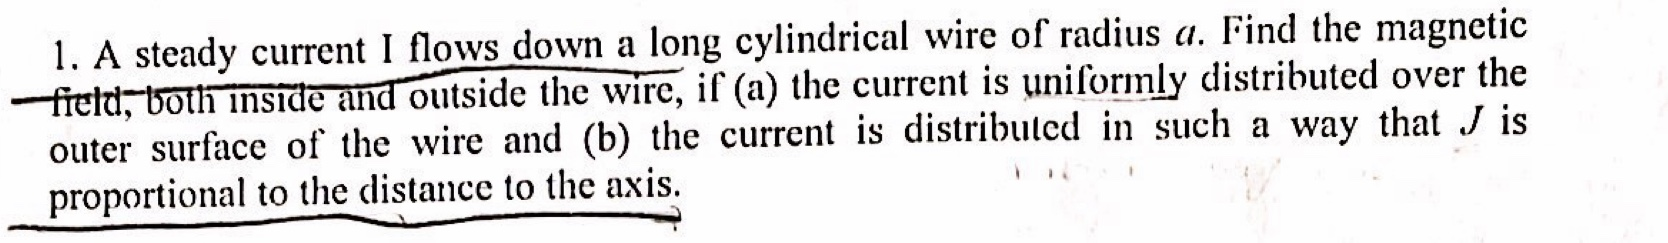 1. A steady current I flows down a long cylindrical wire of radius a. Find the magnetic freld, both inside and outside the wire, if (a) the current is uniformly distributed over the outer surface of the wire and (b) the current is distributed in such a way that J is proportional to the distance to the axis